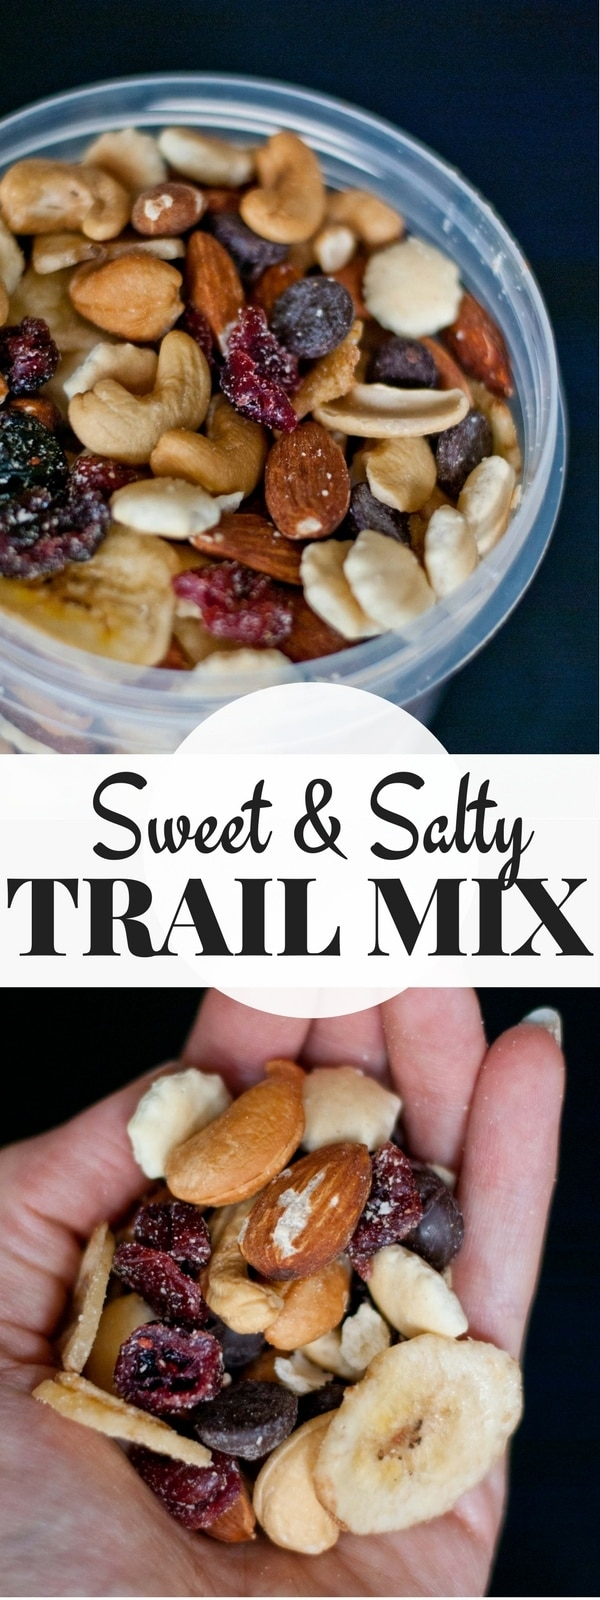 How to make healthy sweet and salty trail mix neighborfoodblog raisins cranberries cashews almonds chocolate and banana chips in a storage how to make ccuart Gallery